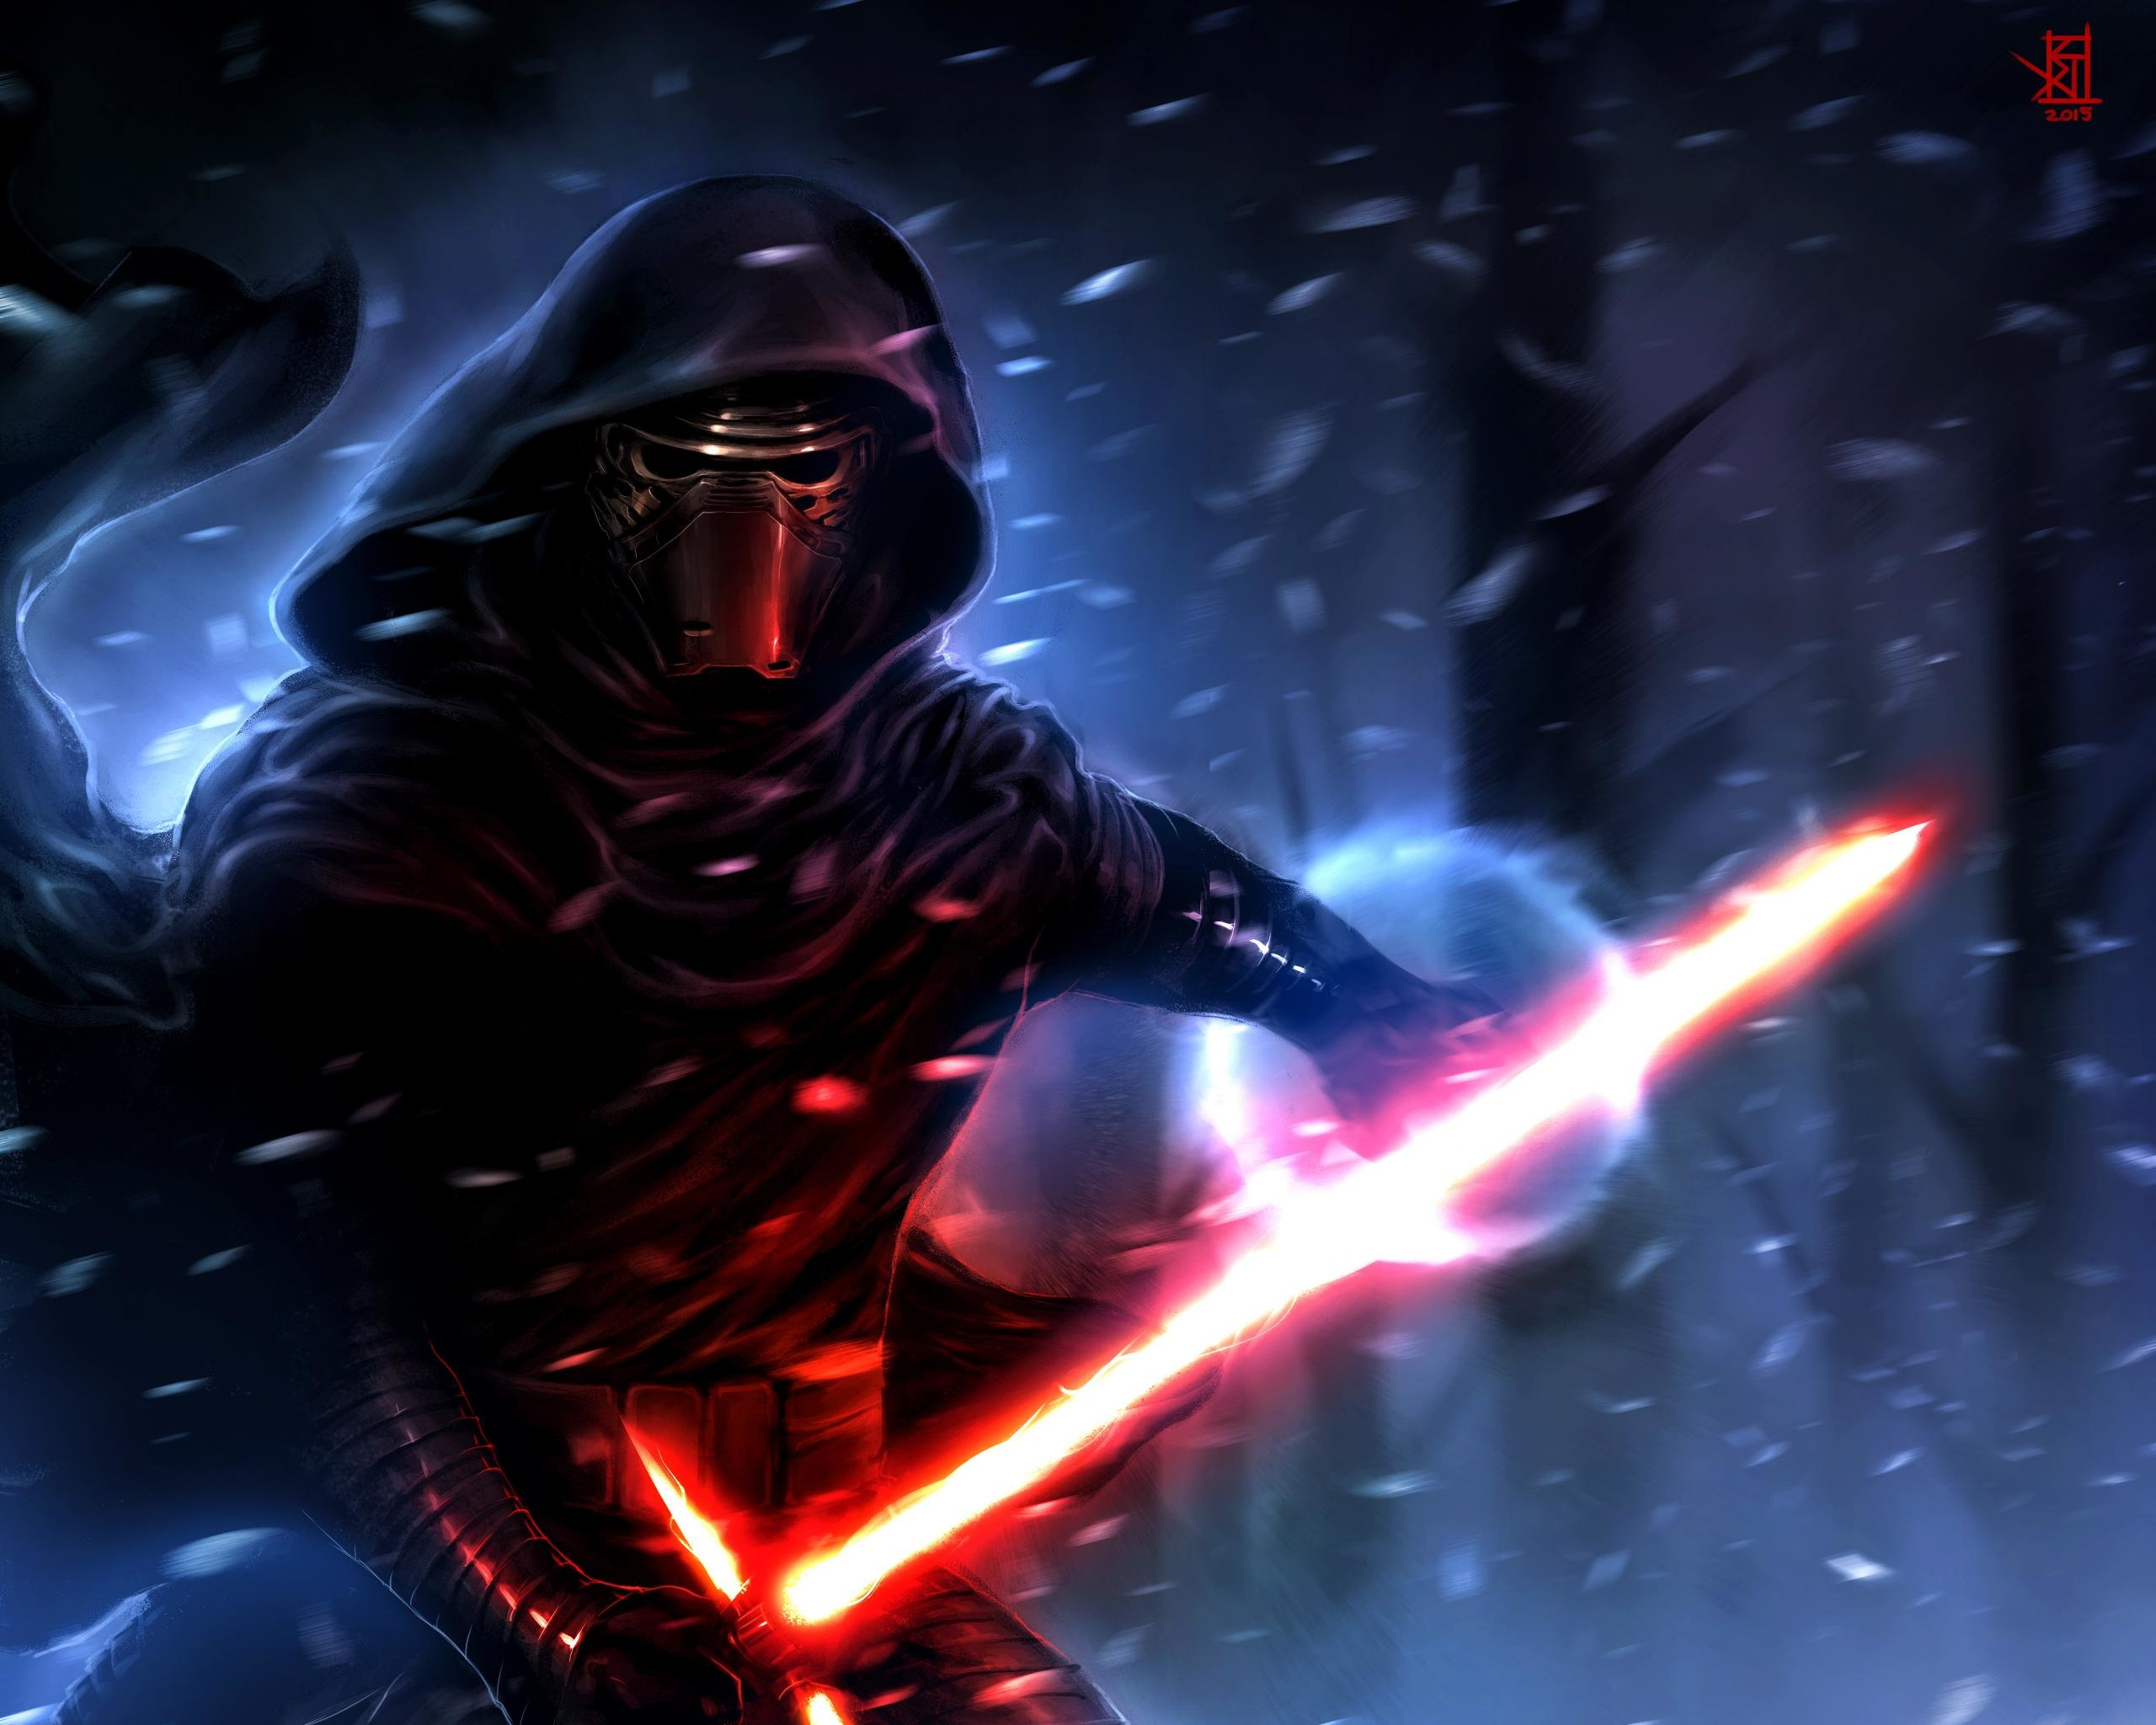 Download Hd 2560x2048 Star Wars Episode 7 Vii The Force Awakens Pc Wallpaper Id 282709